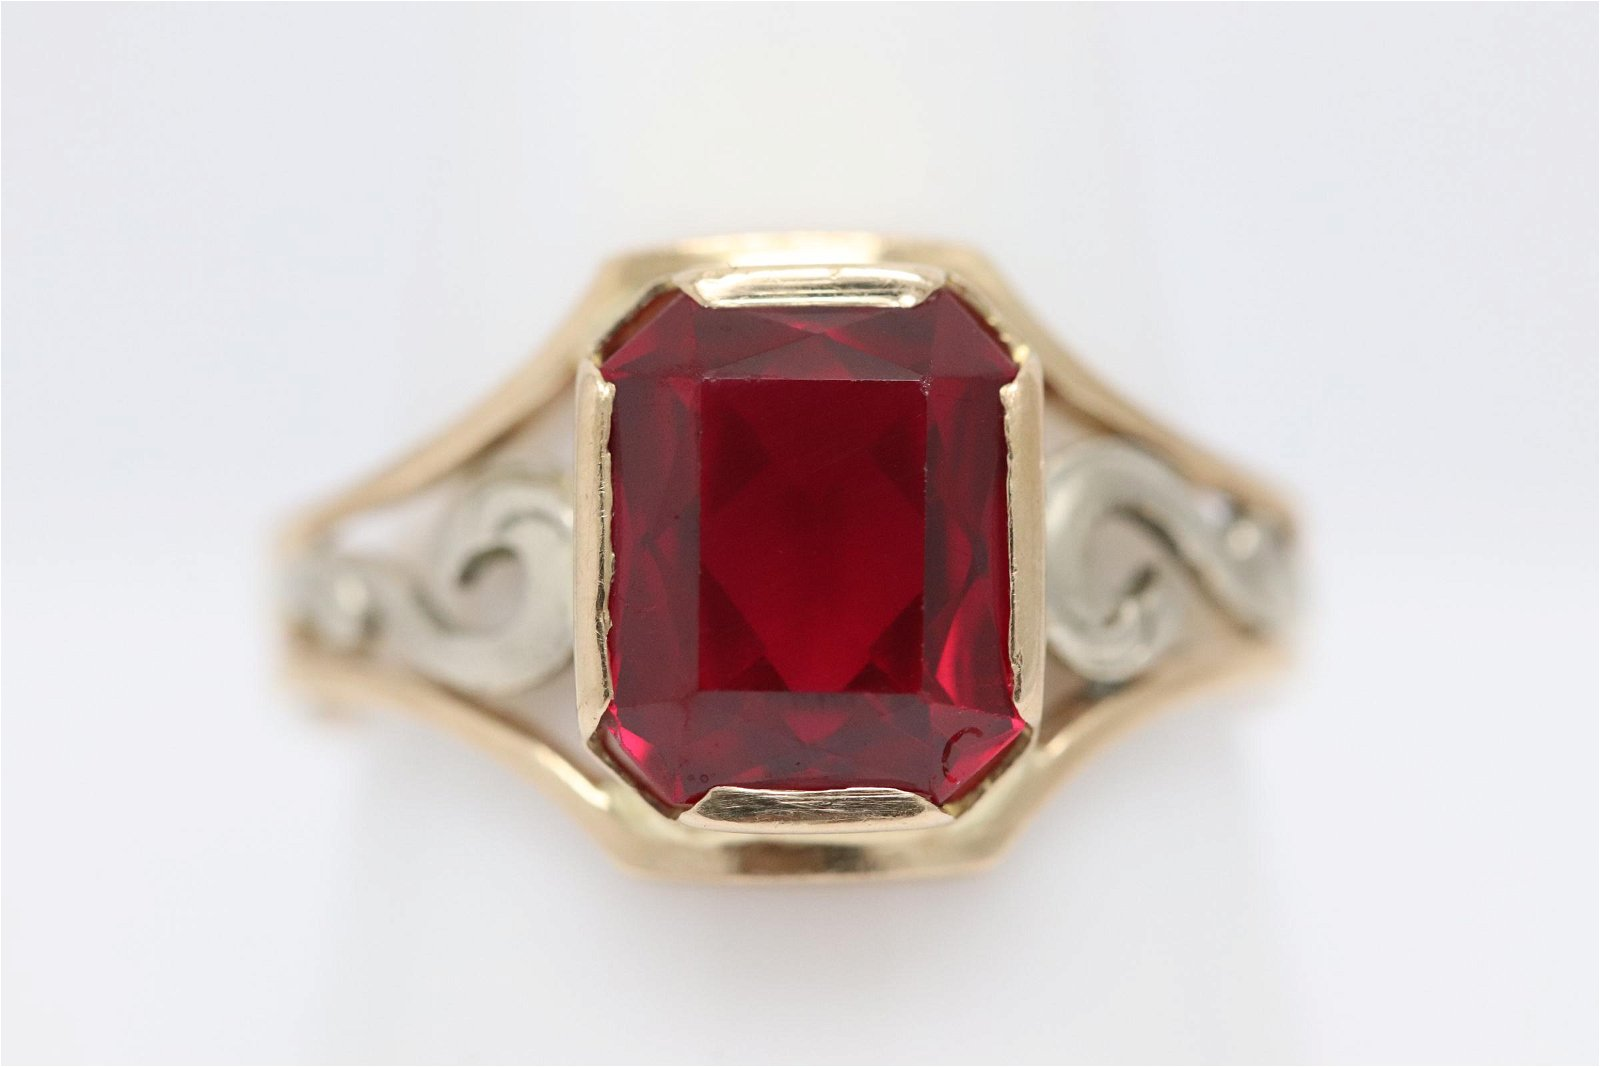 12K bicolor gold ring with a red stone